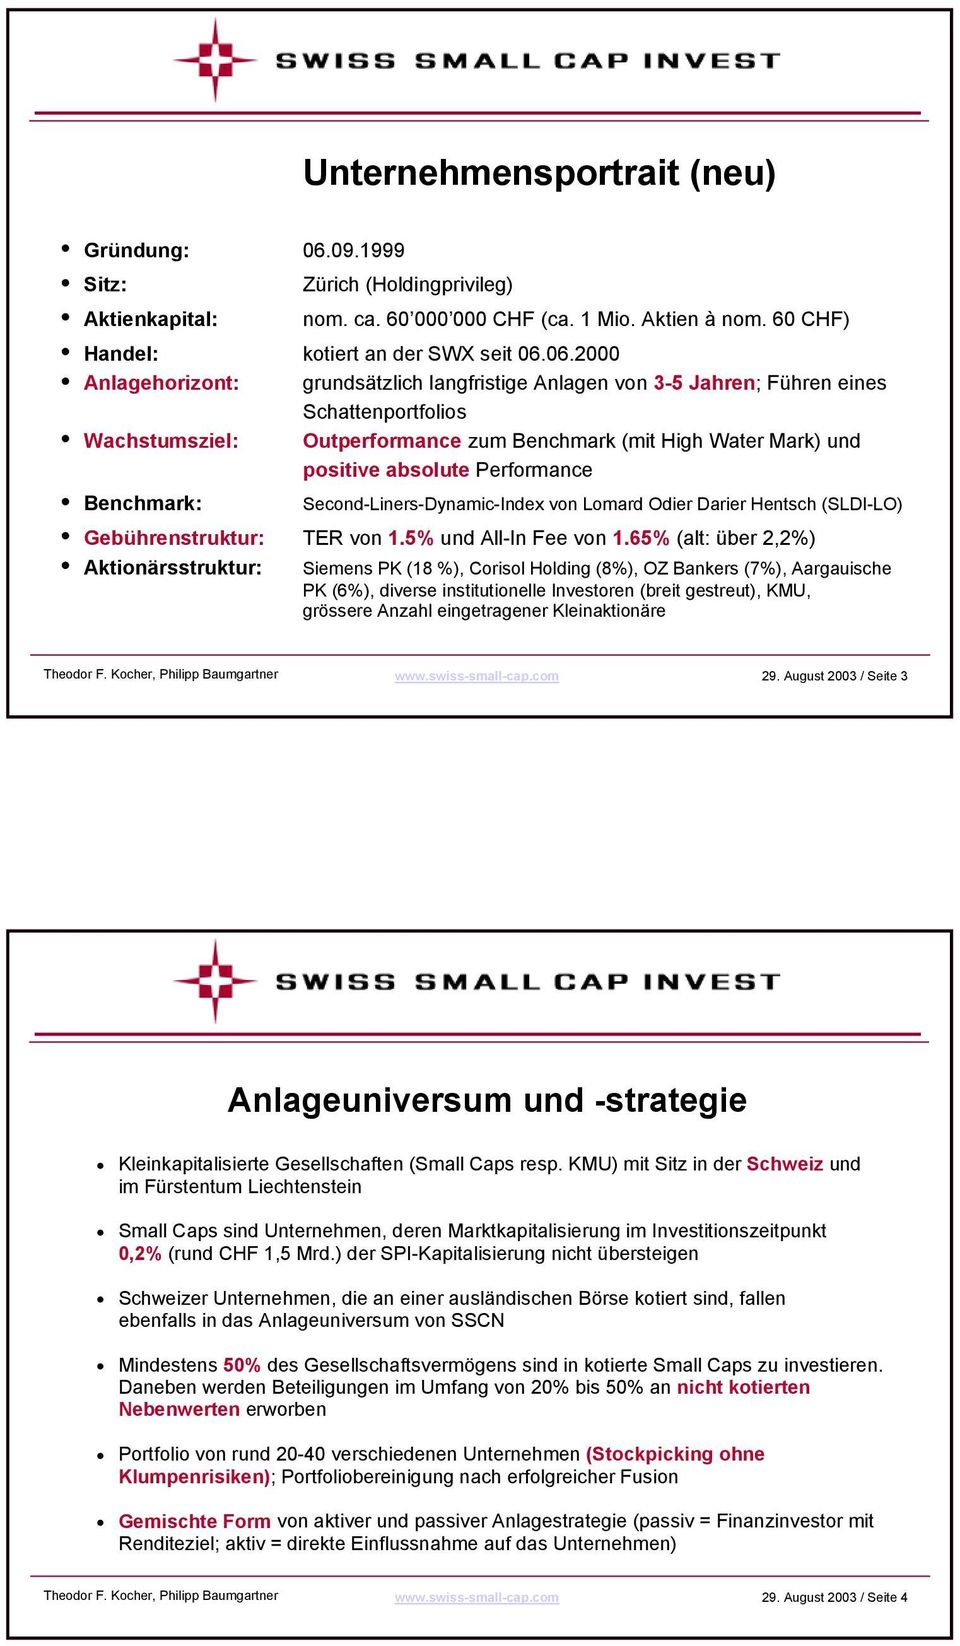 06.2000 Anlagehorizont: grundsätzlich langfristige Anlagen von 3-5 Jahren; Führen eines Schattenportfolios Wachstumsziel: Outperformance zum Benchmark (mit High Water Mark) und positive absolute